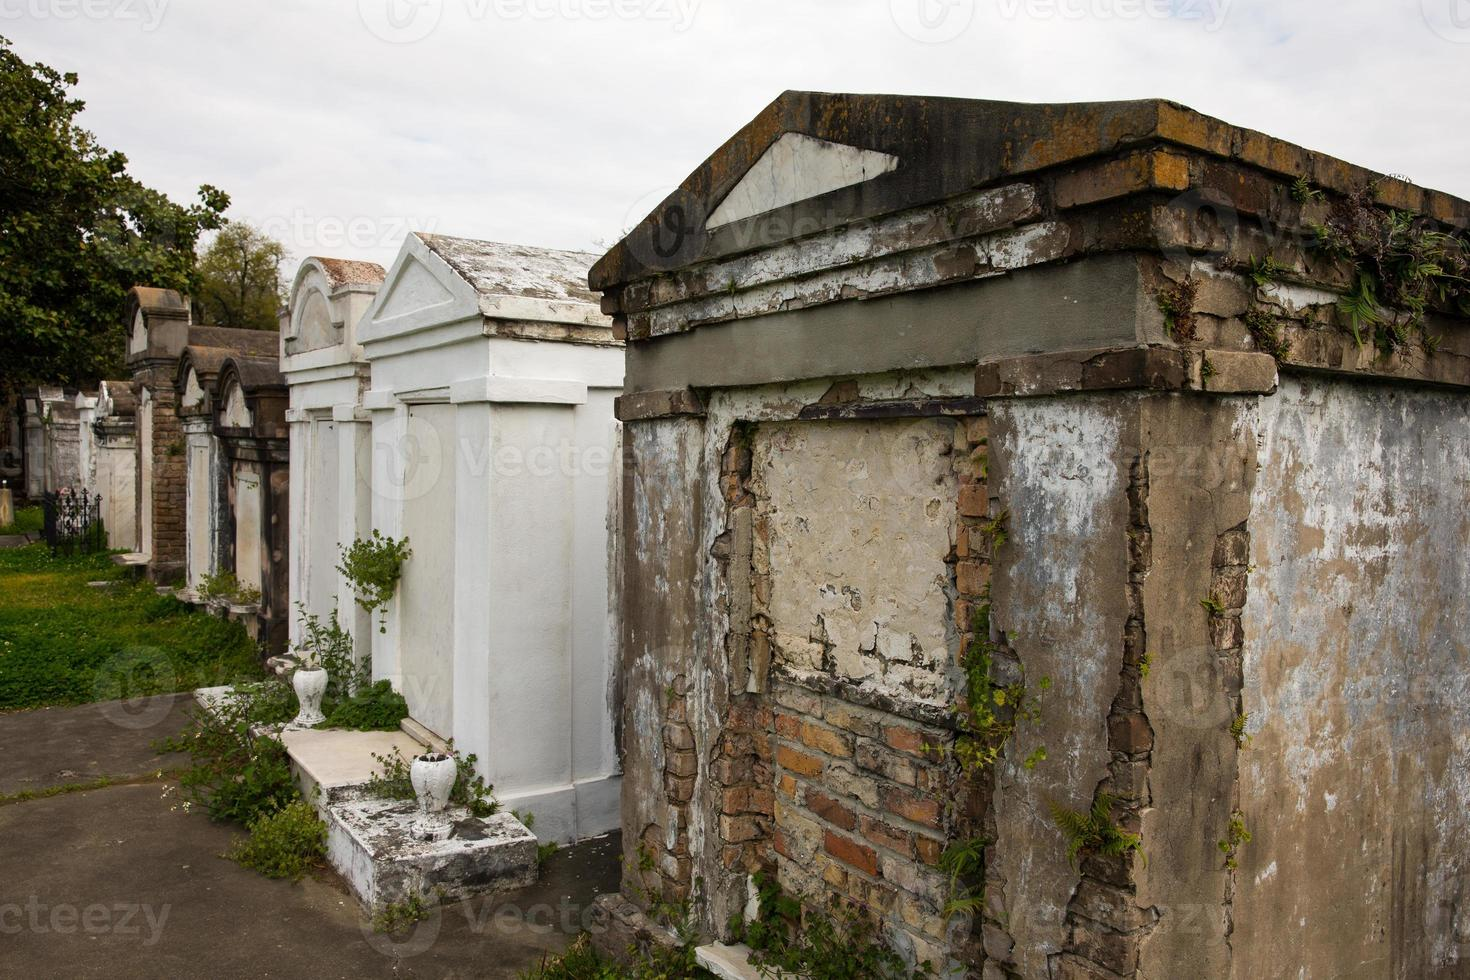 New Orleans - Above Ground Cemetery photo